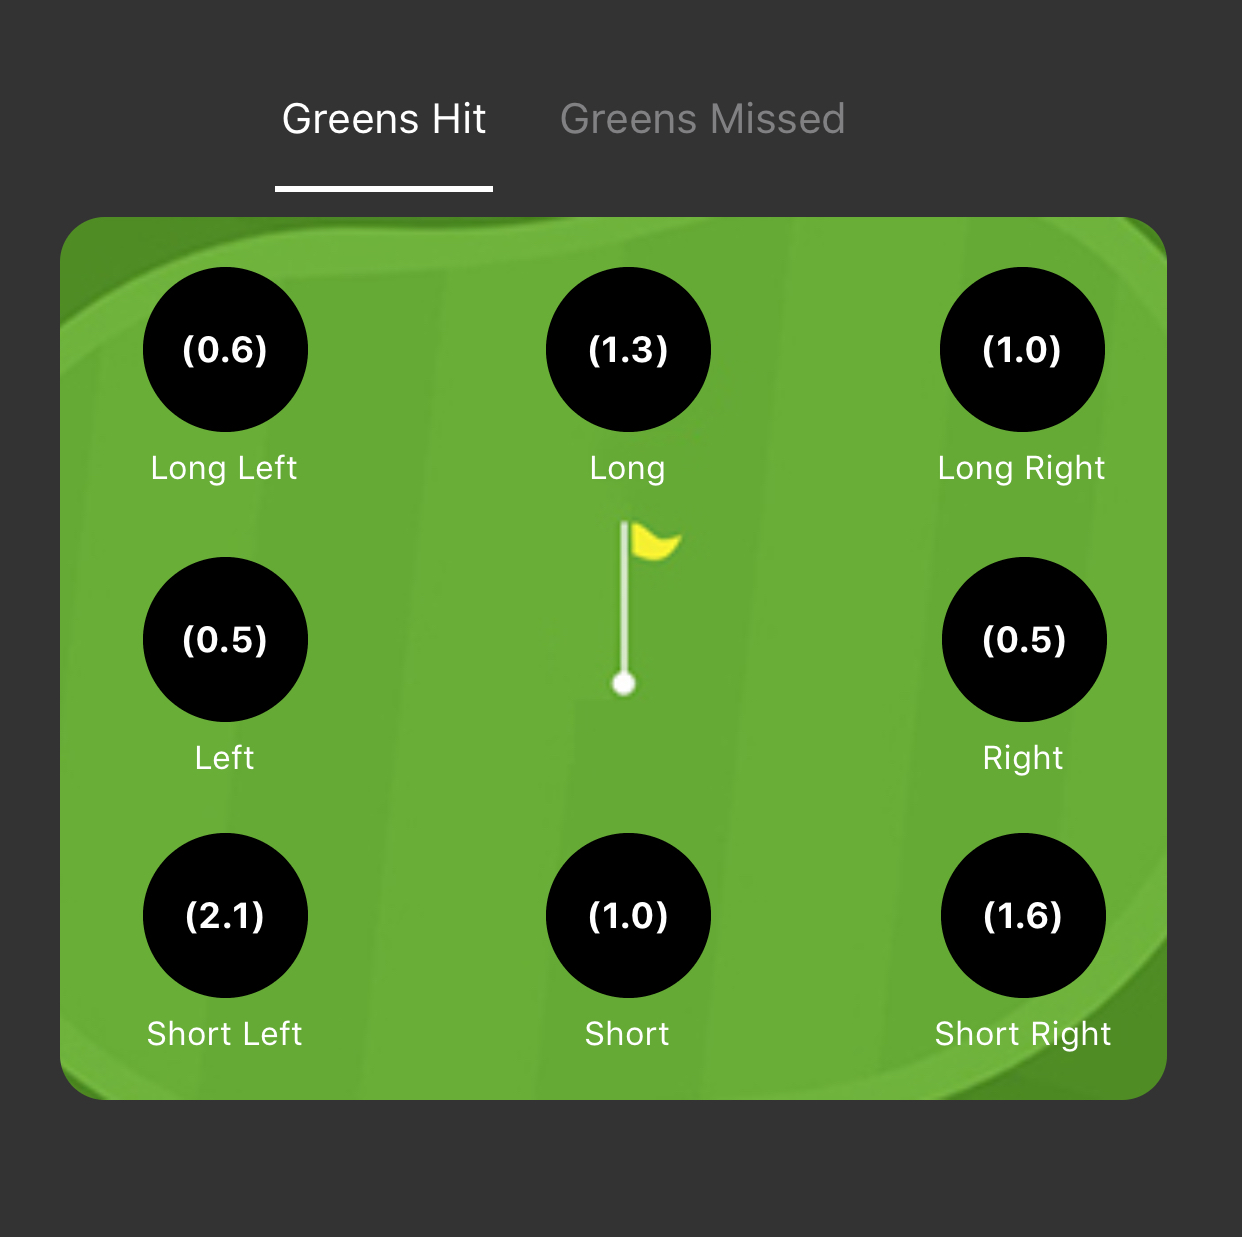 Greens hit - Approach shots